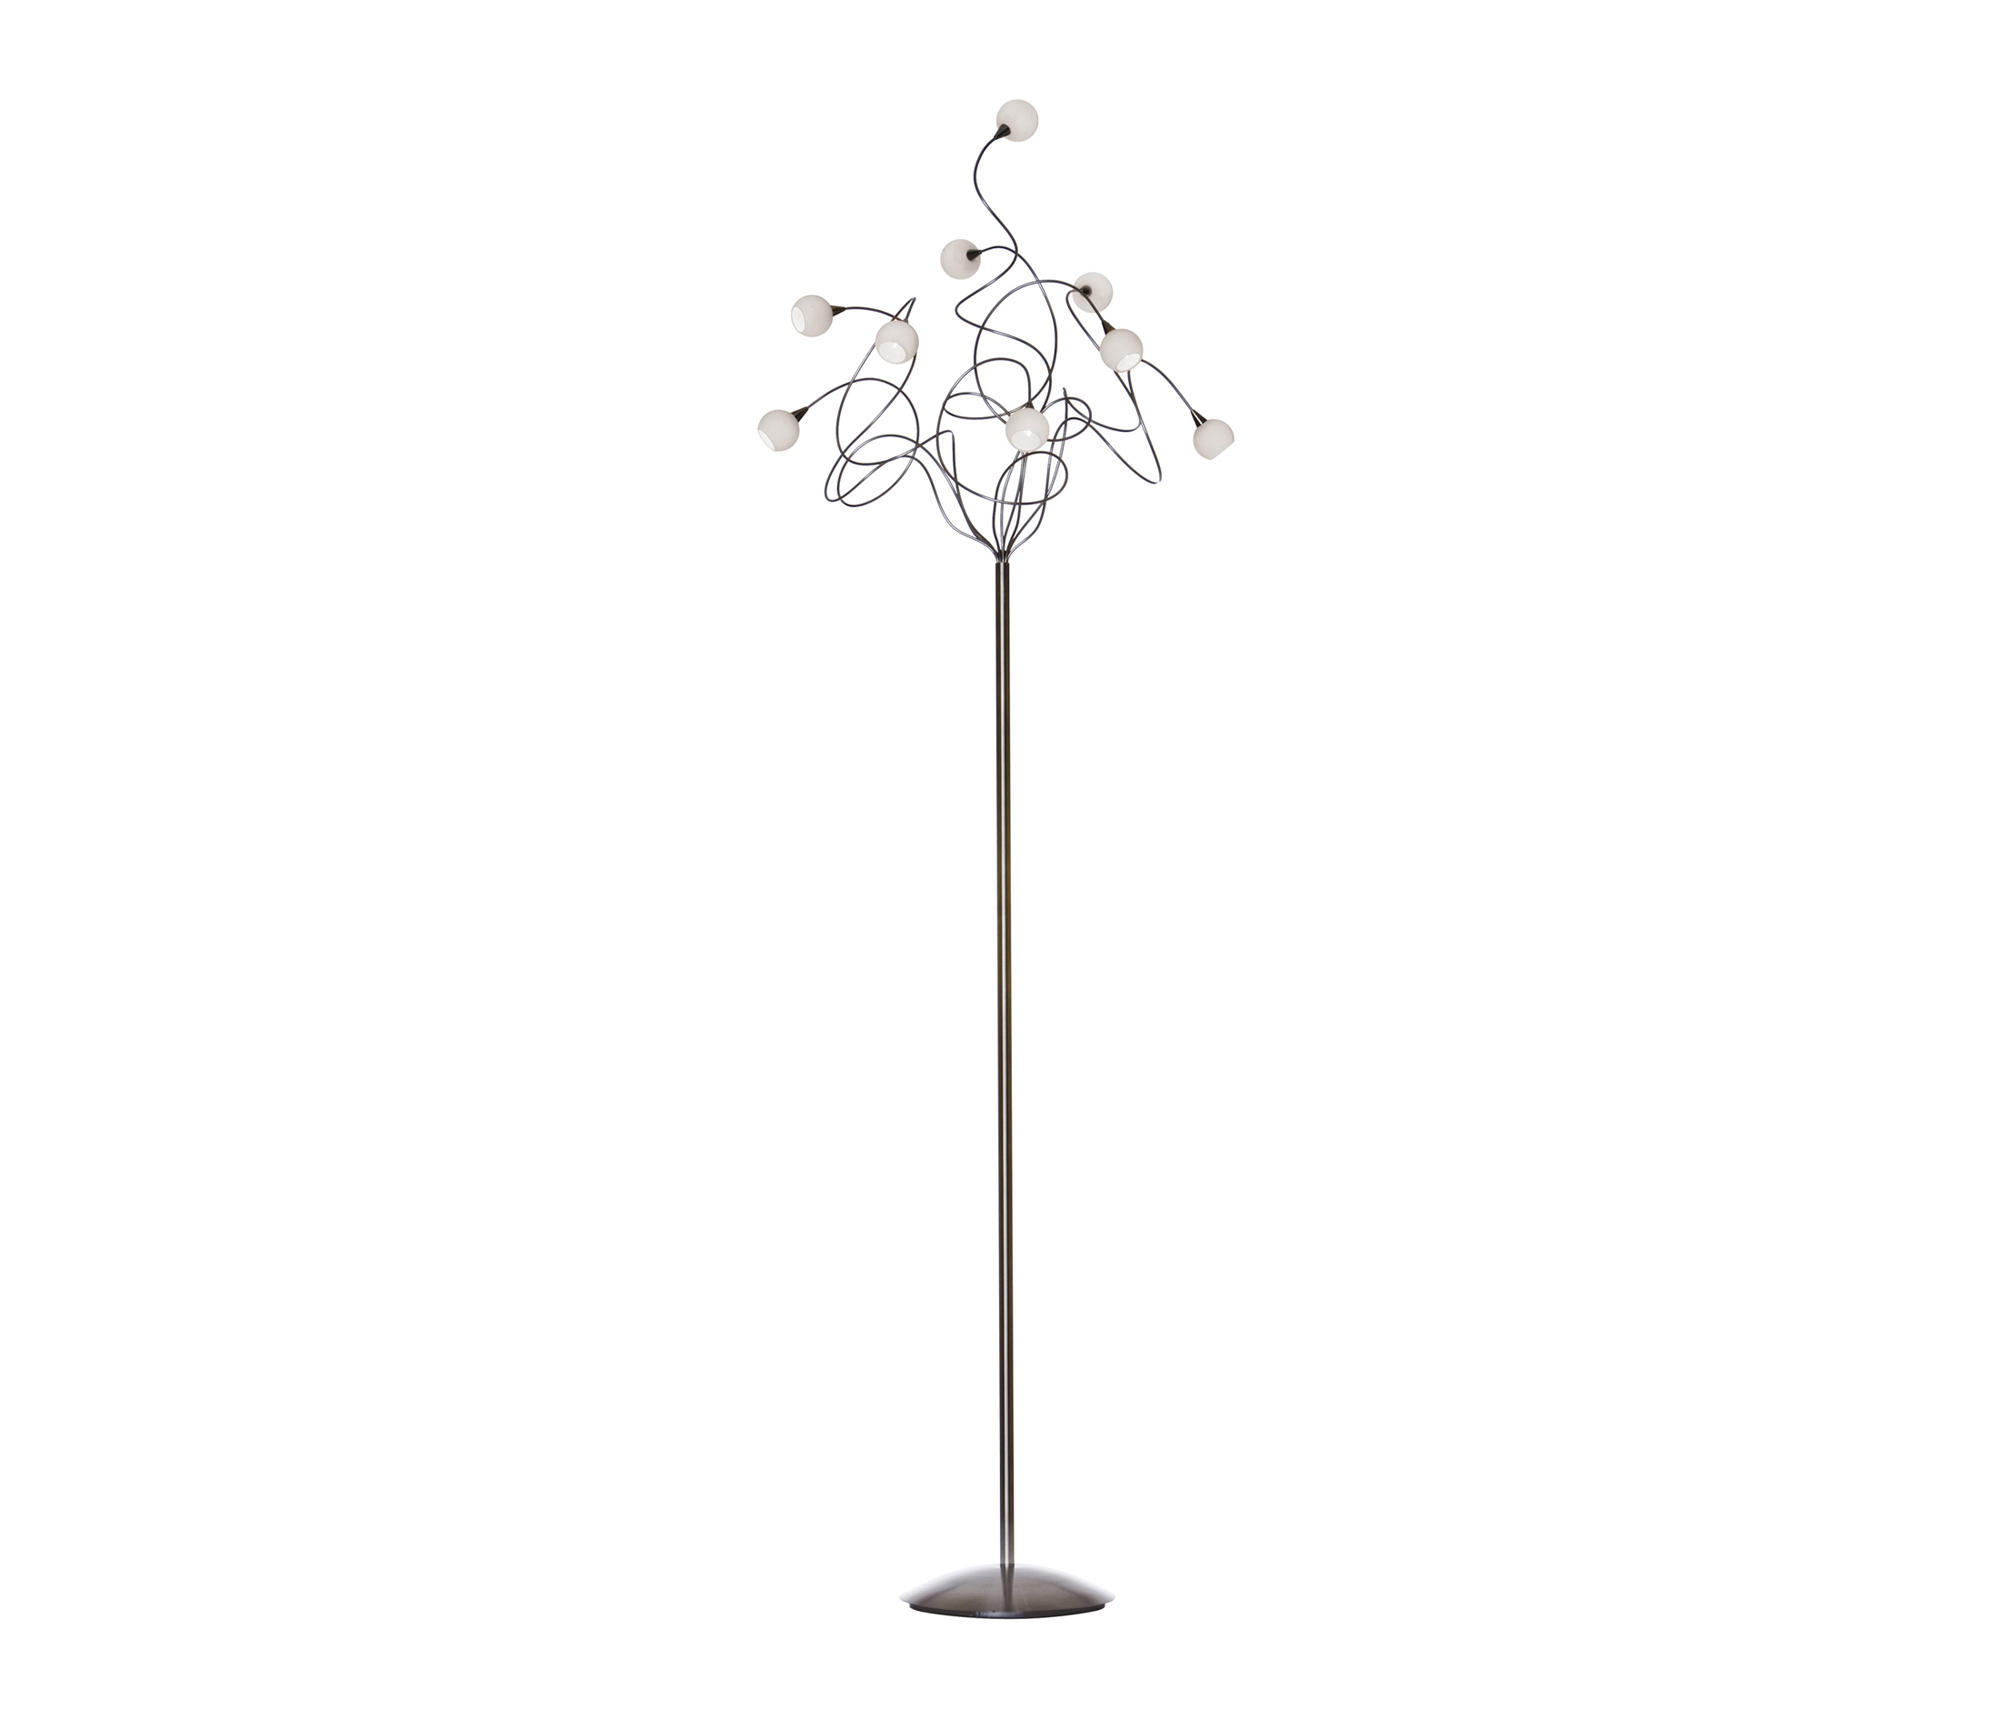 FLOOR LAMPS IN STAINLESS STEEL High quality designer FLOOR LAMPS